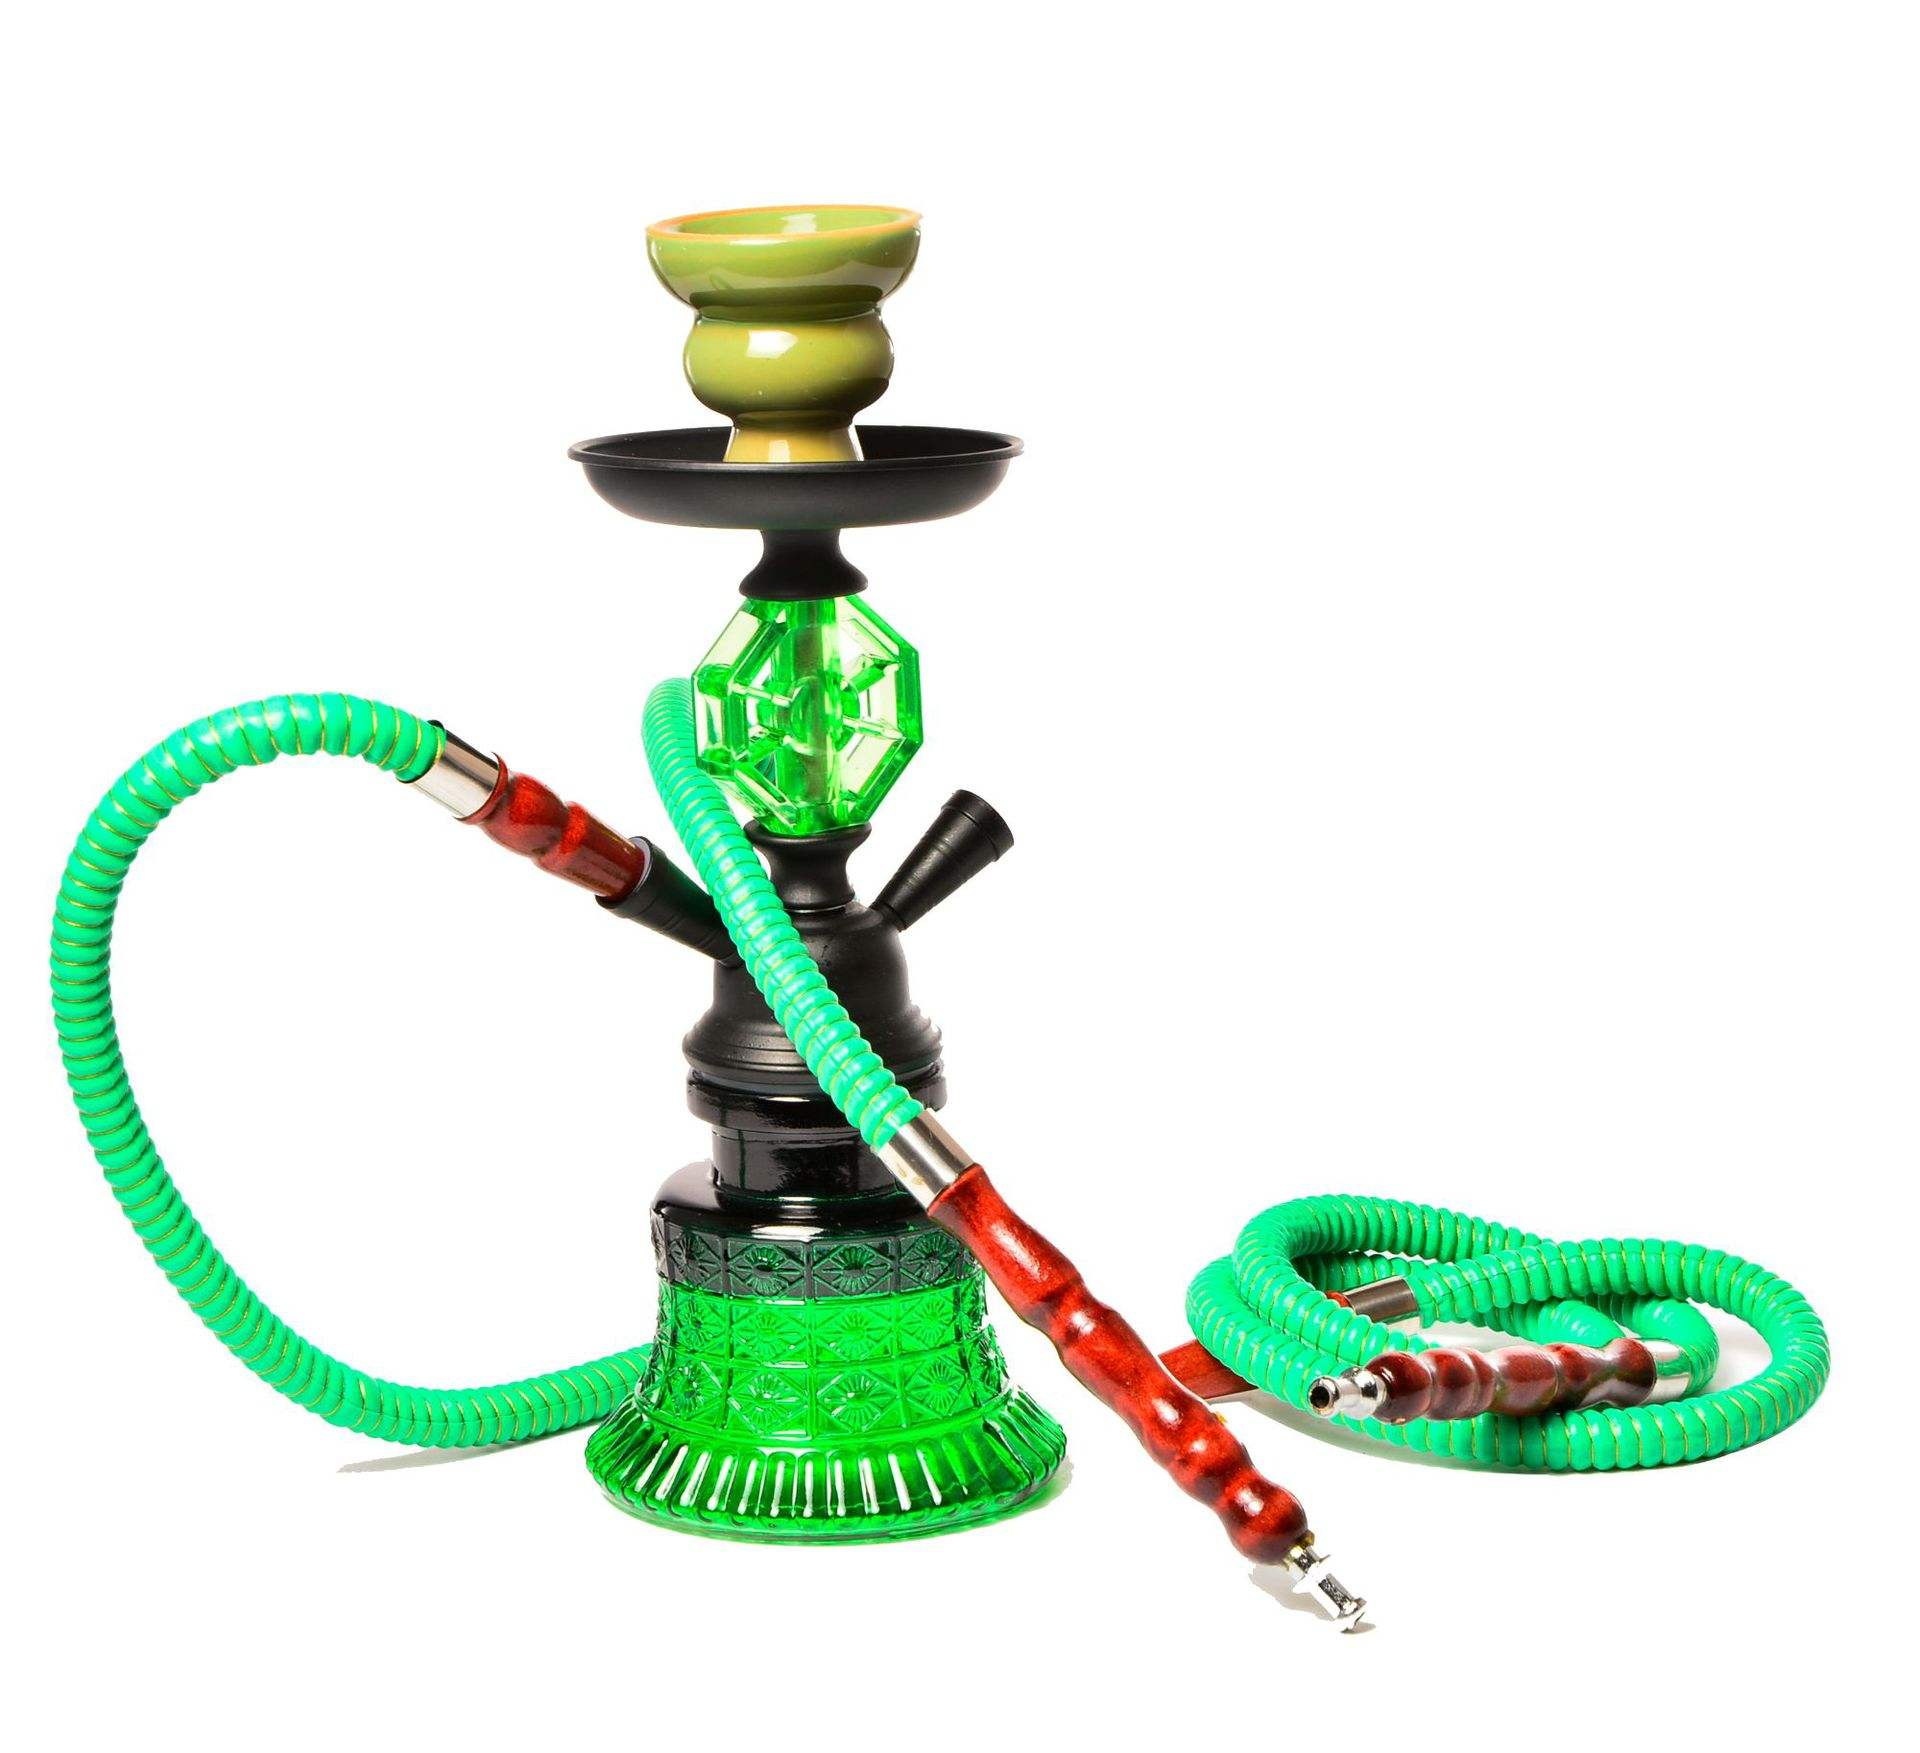 double hose acrylic hookah with hookah tips for Abric shisha style color bowl with light and accessories